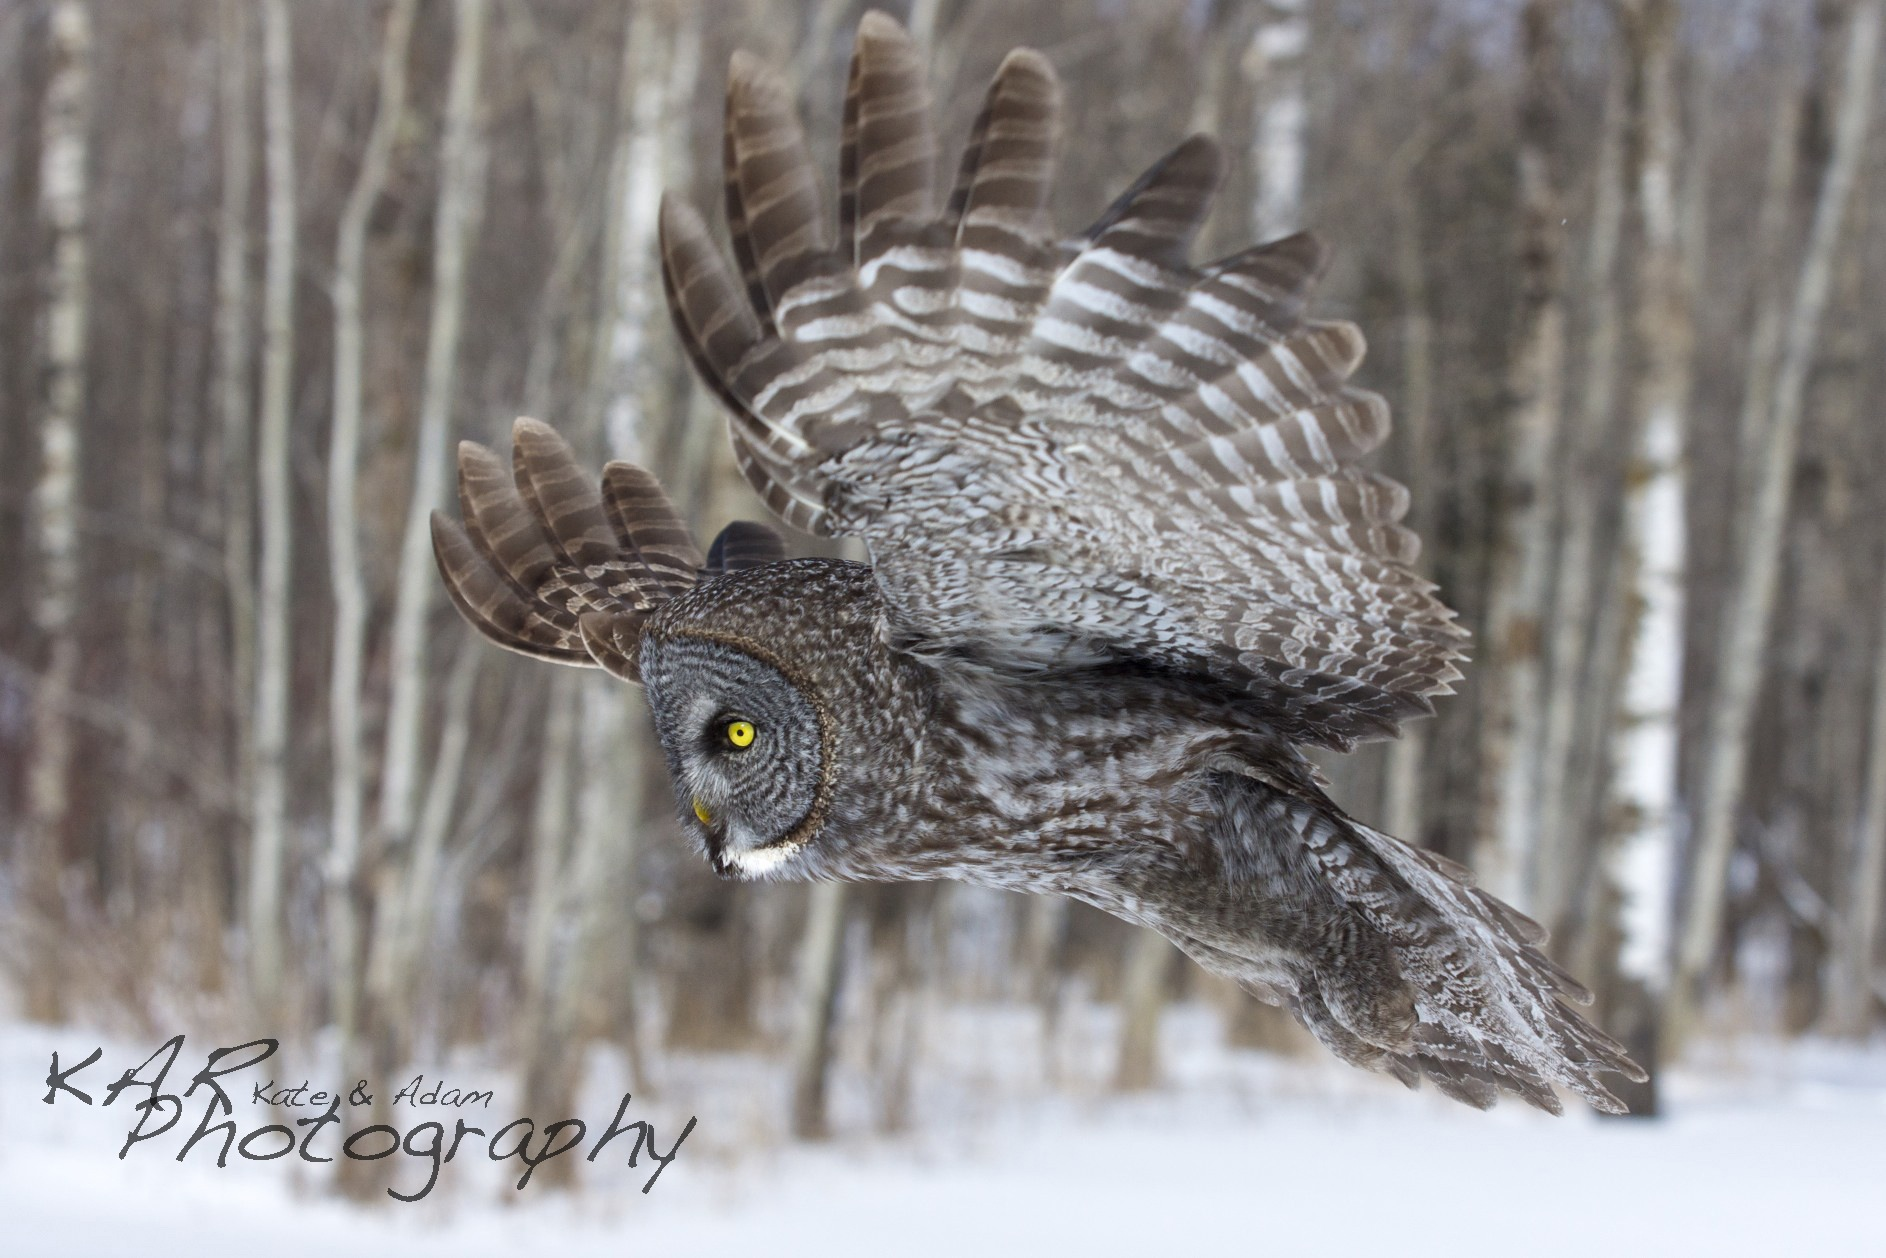 Keep your eye on Kate & Adam Rice as they keep their lens on the fabulous wildlife of the American west. Great grey owl. Image: Thanks to Kate and Adam Rice, ©KAR Photography.